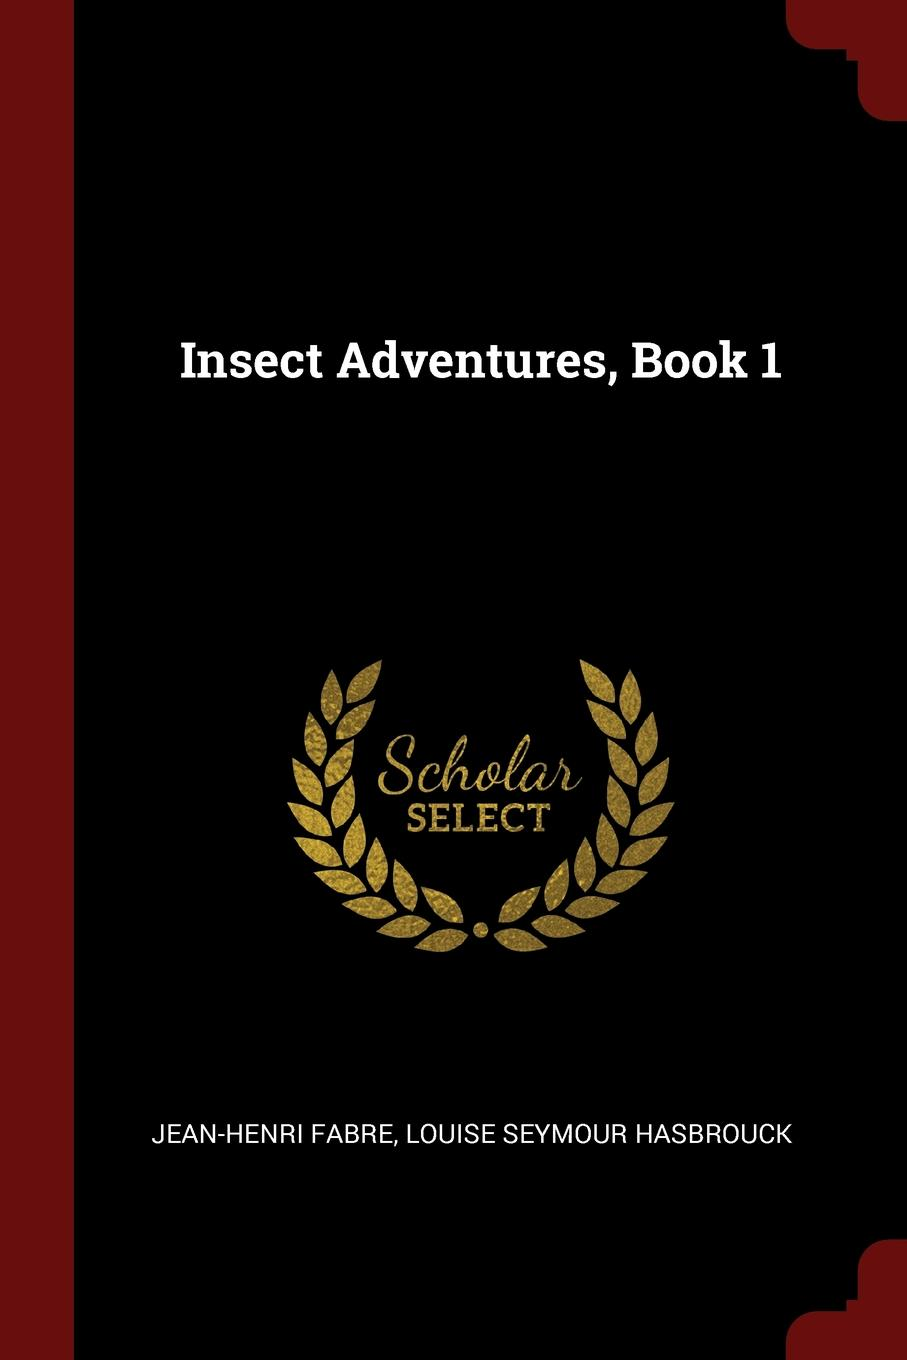 Jean-Henri Fabre, Louise Seymour Hasbrouck Insect Adventures, Book 1